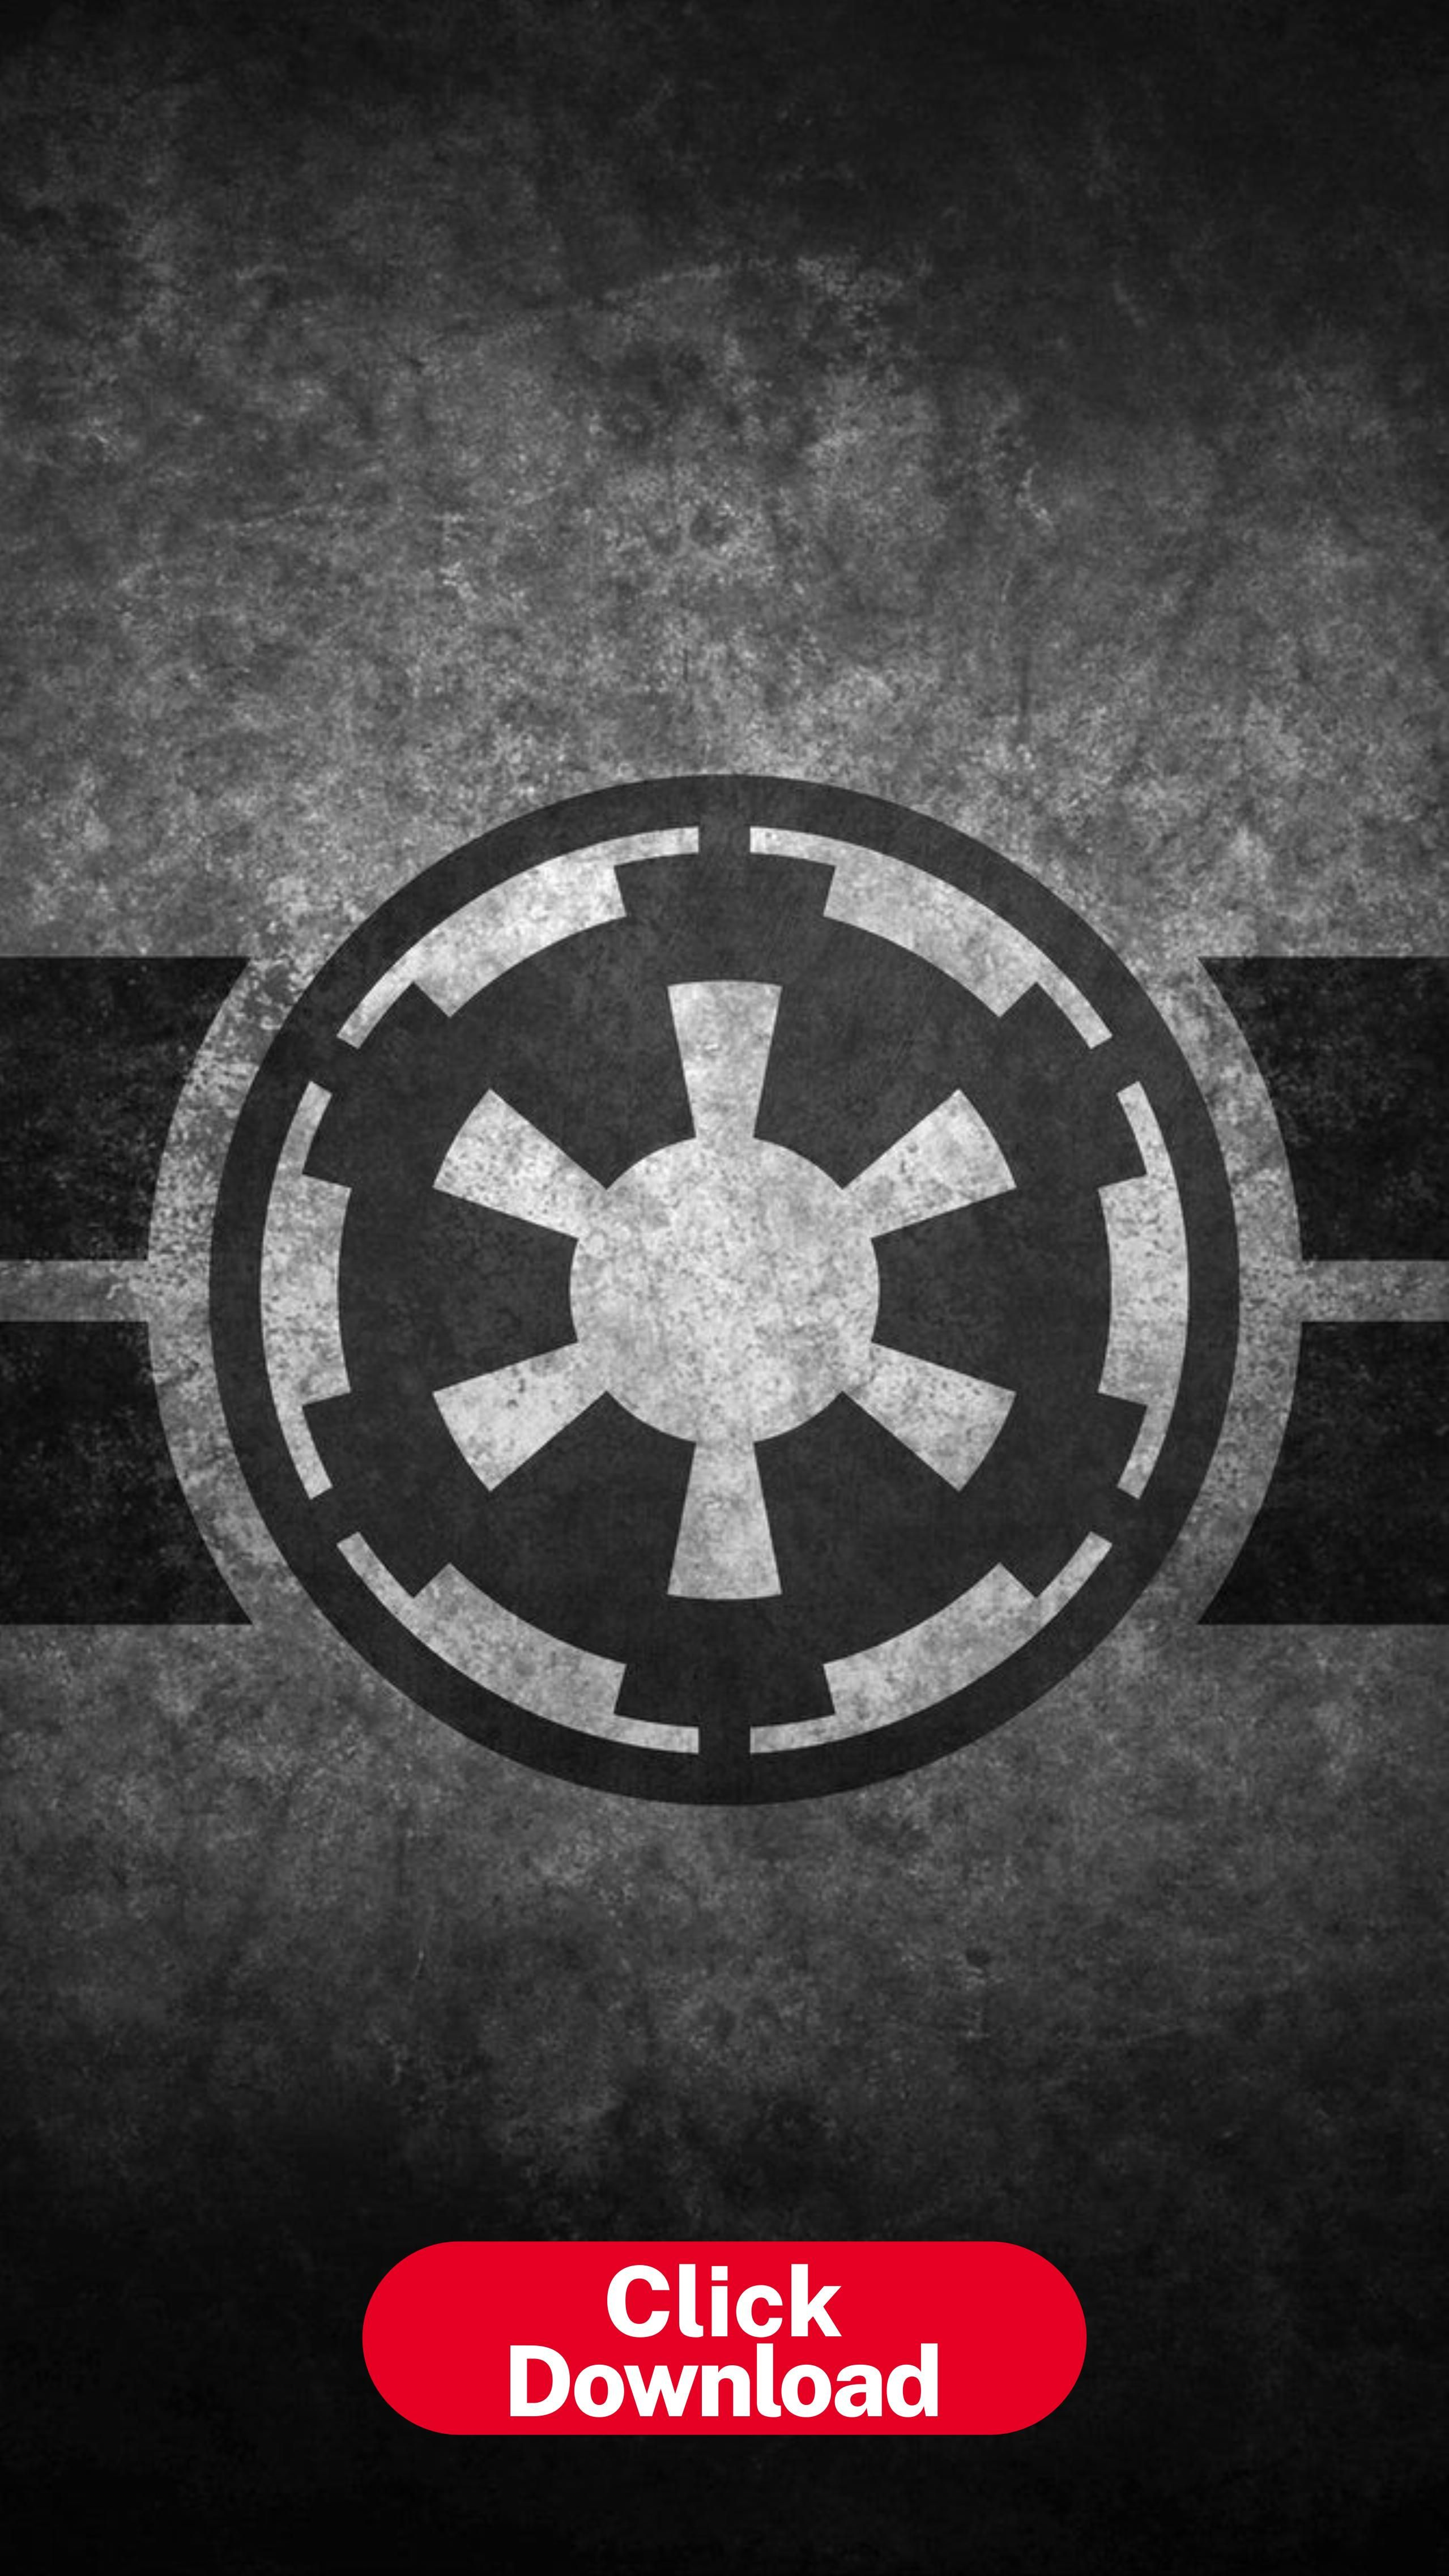 Imperial Star Wars Phone Wallpapers Top Free Imperial Star Wars Phone Wallpaper Star Wars Wallpaper